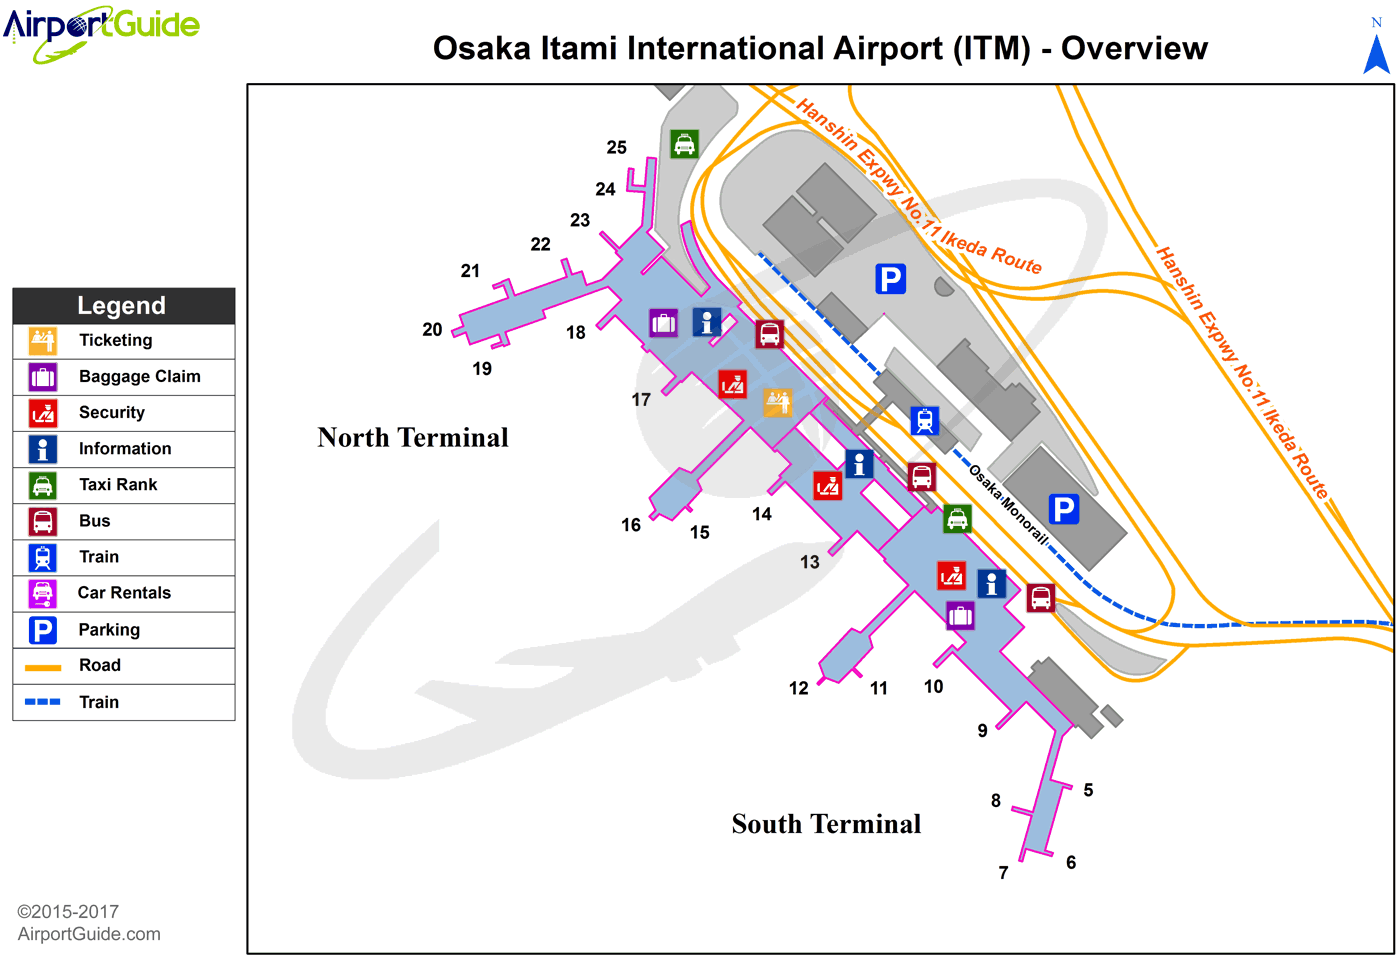 Osaka - Osaka International (ITM) Airport Terminal Map - Overview